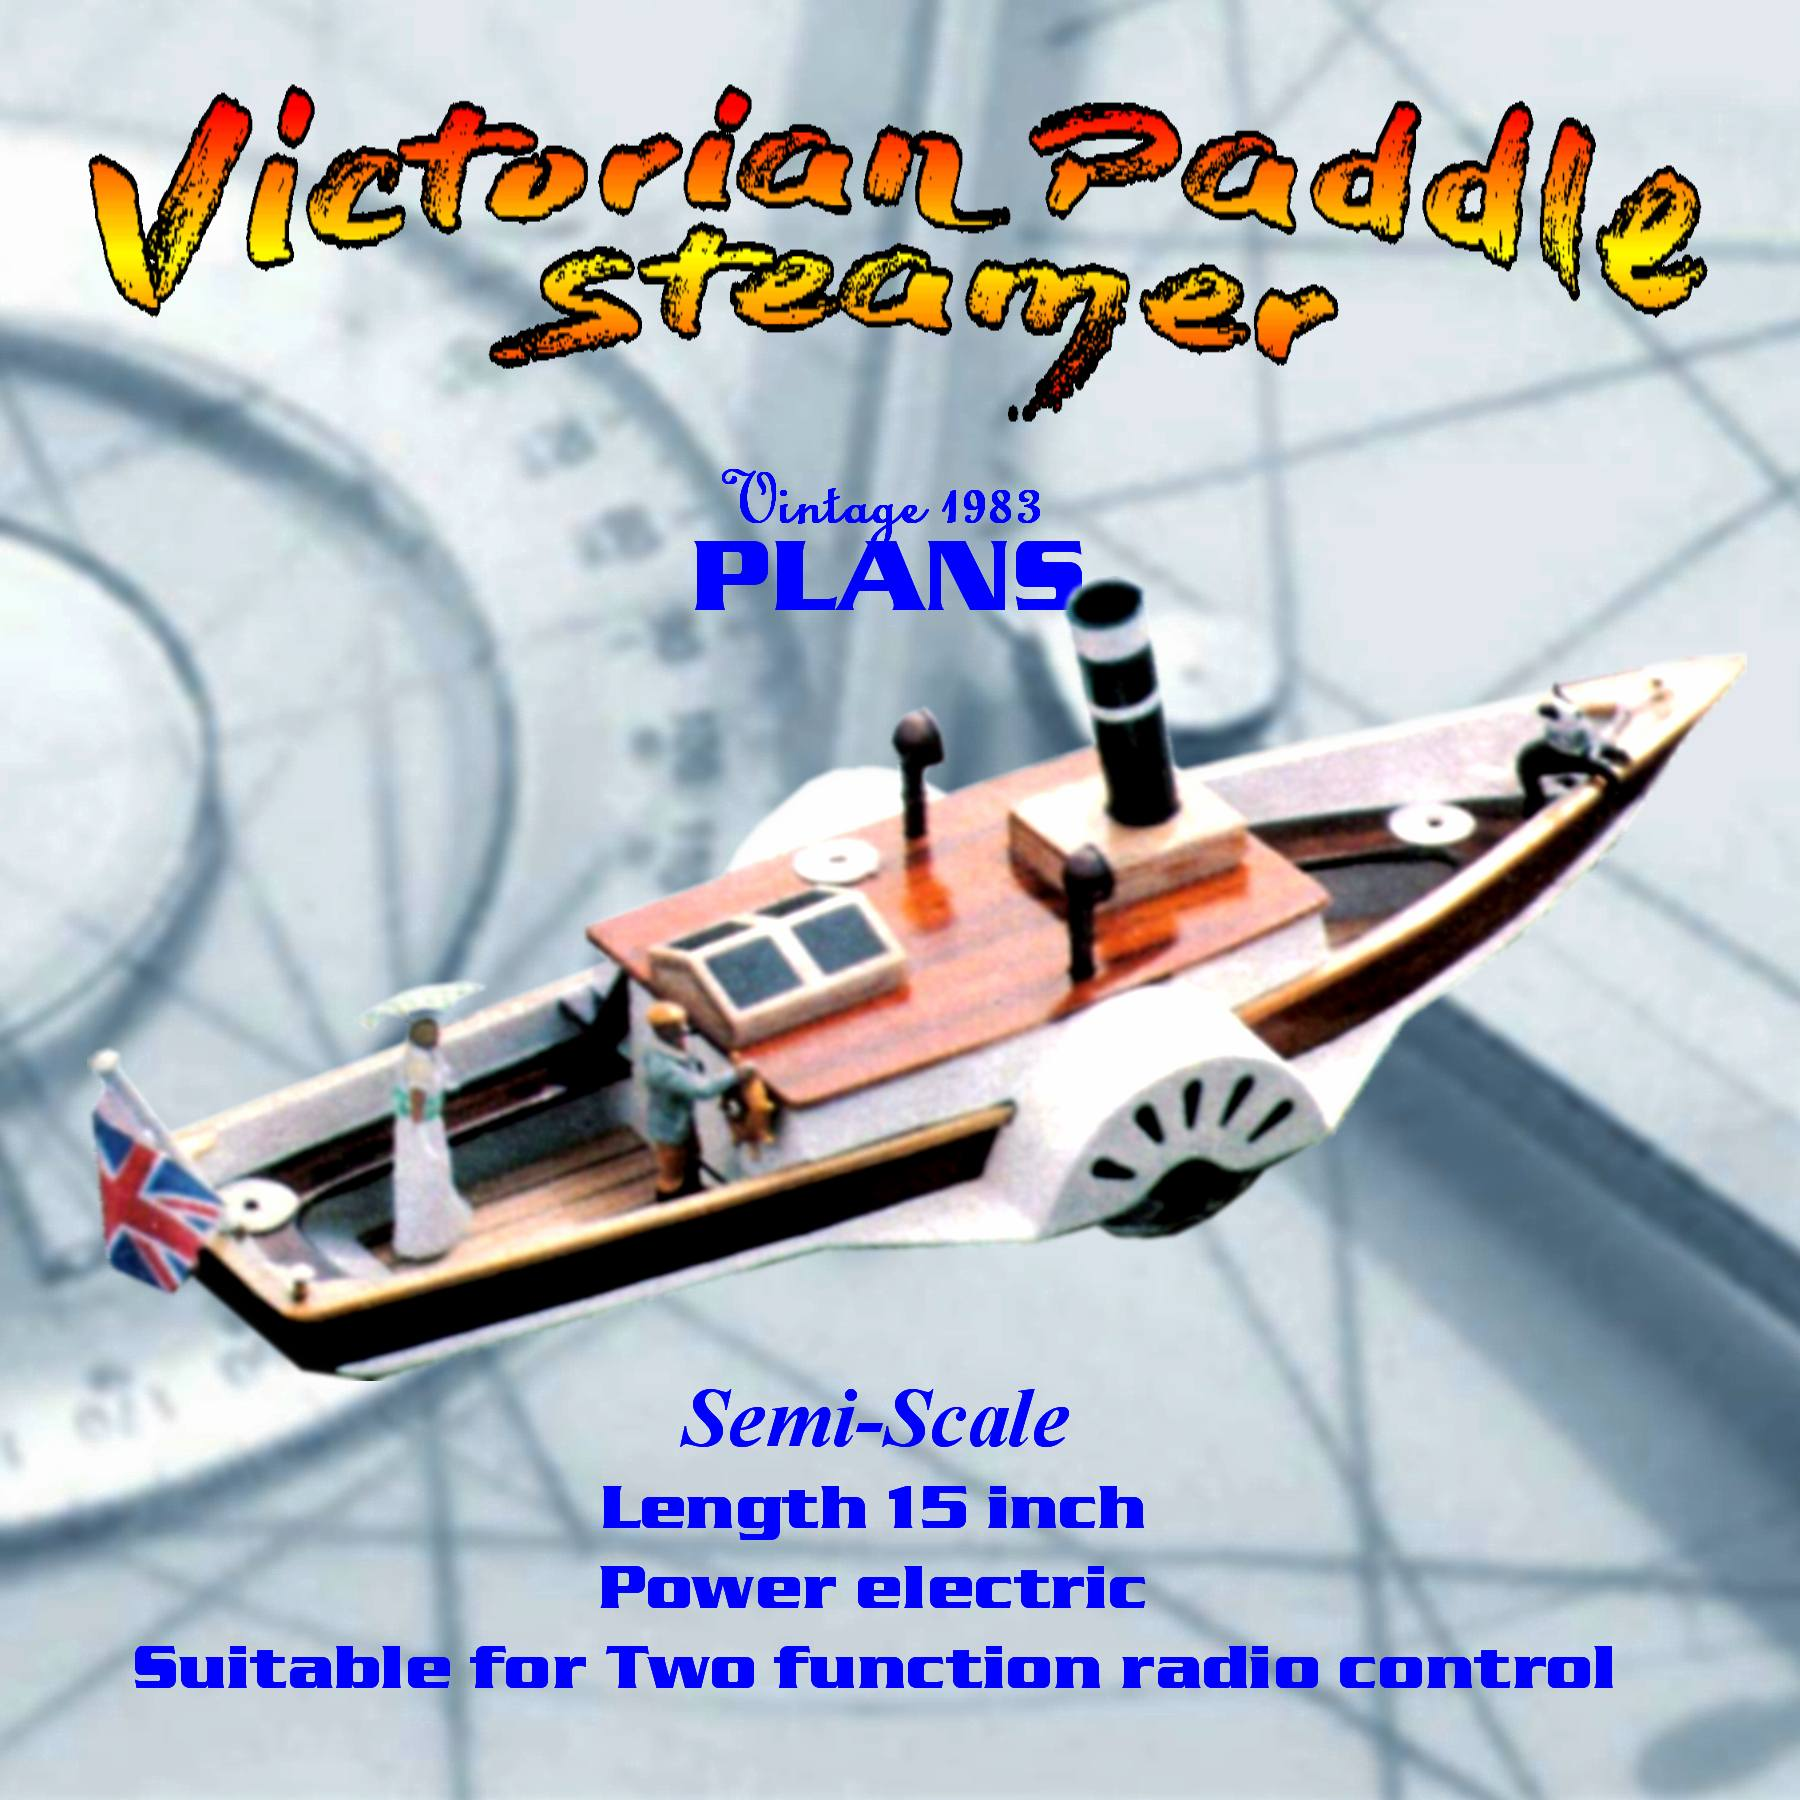 Full Size Printed Plan Semi-scale appearance Victorian Paddle Steamer for Radio Control